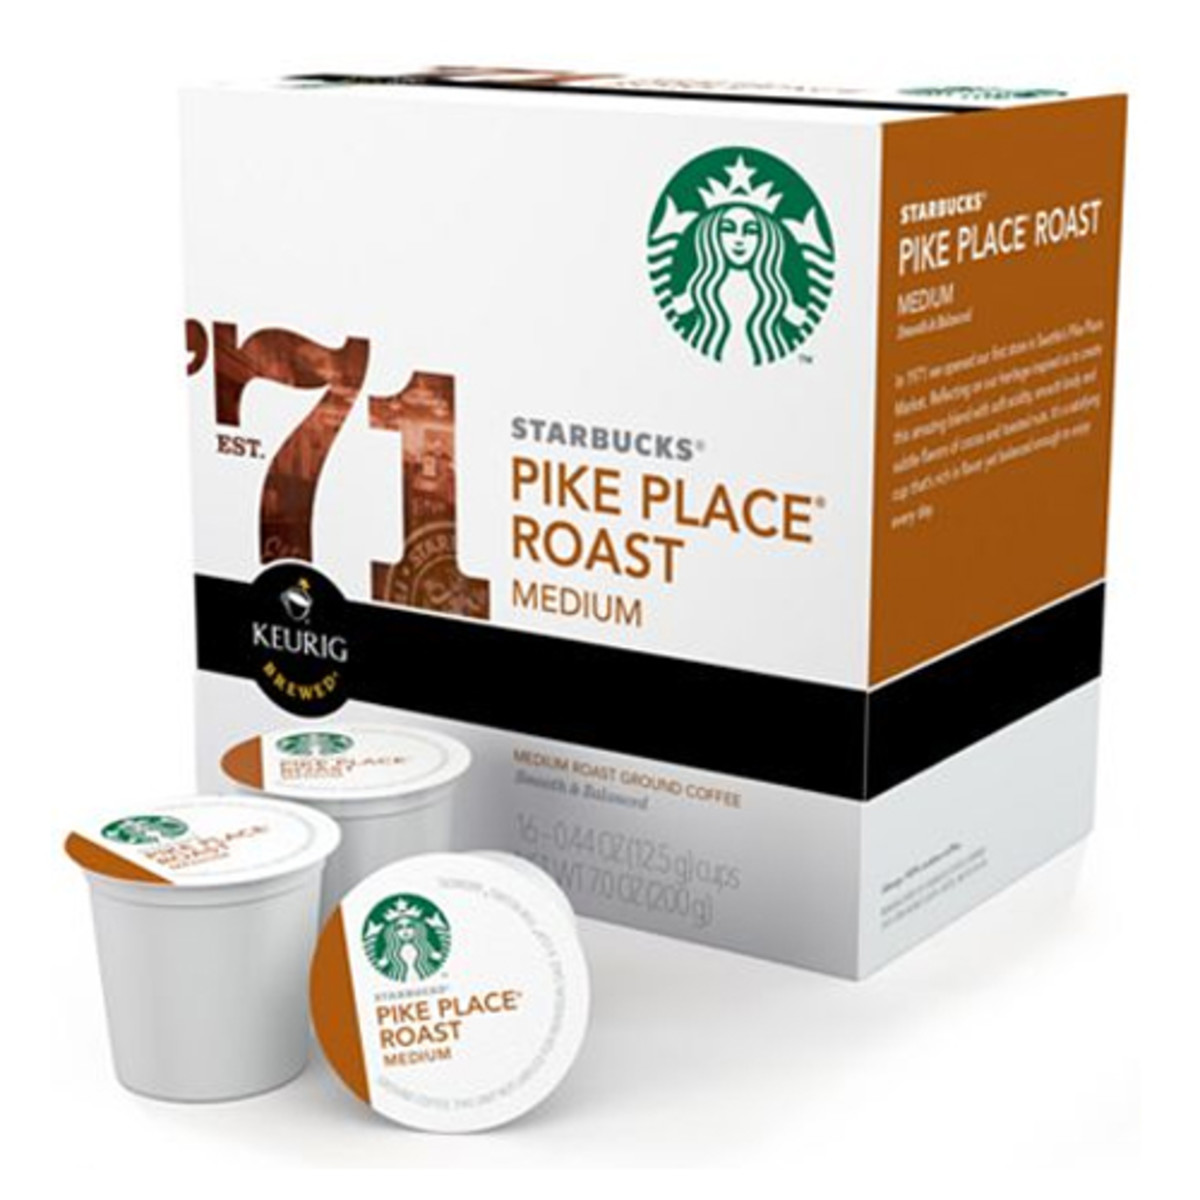 Starbucks recently started offering some of its blends in K-cups. Of course, the staple Pike Place is available.